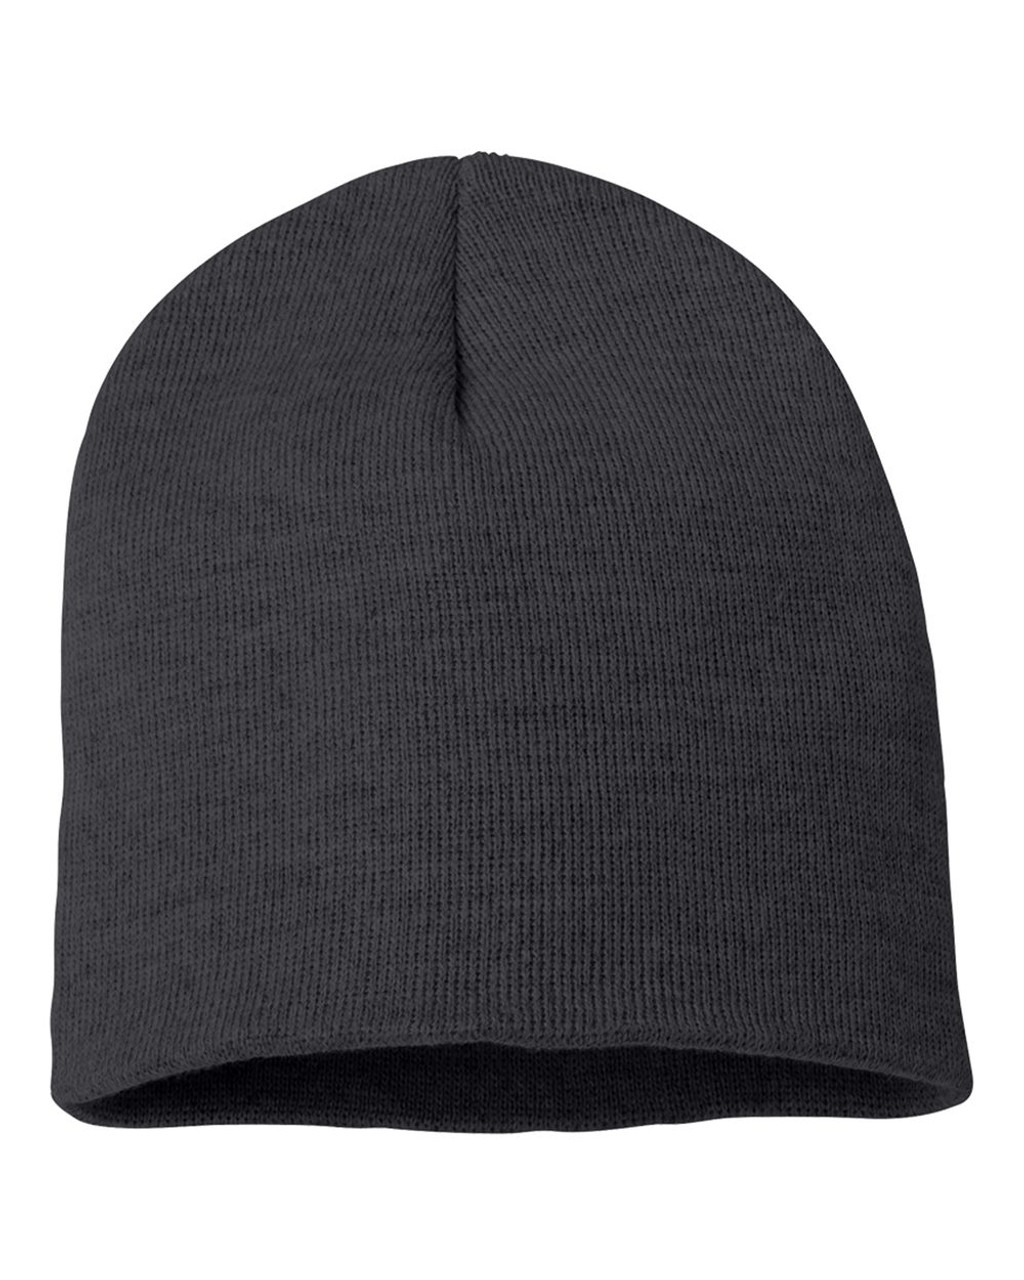 "Heather Charcoal - SP08 Sportsman Acrylic Knit 8"" Toque 